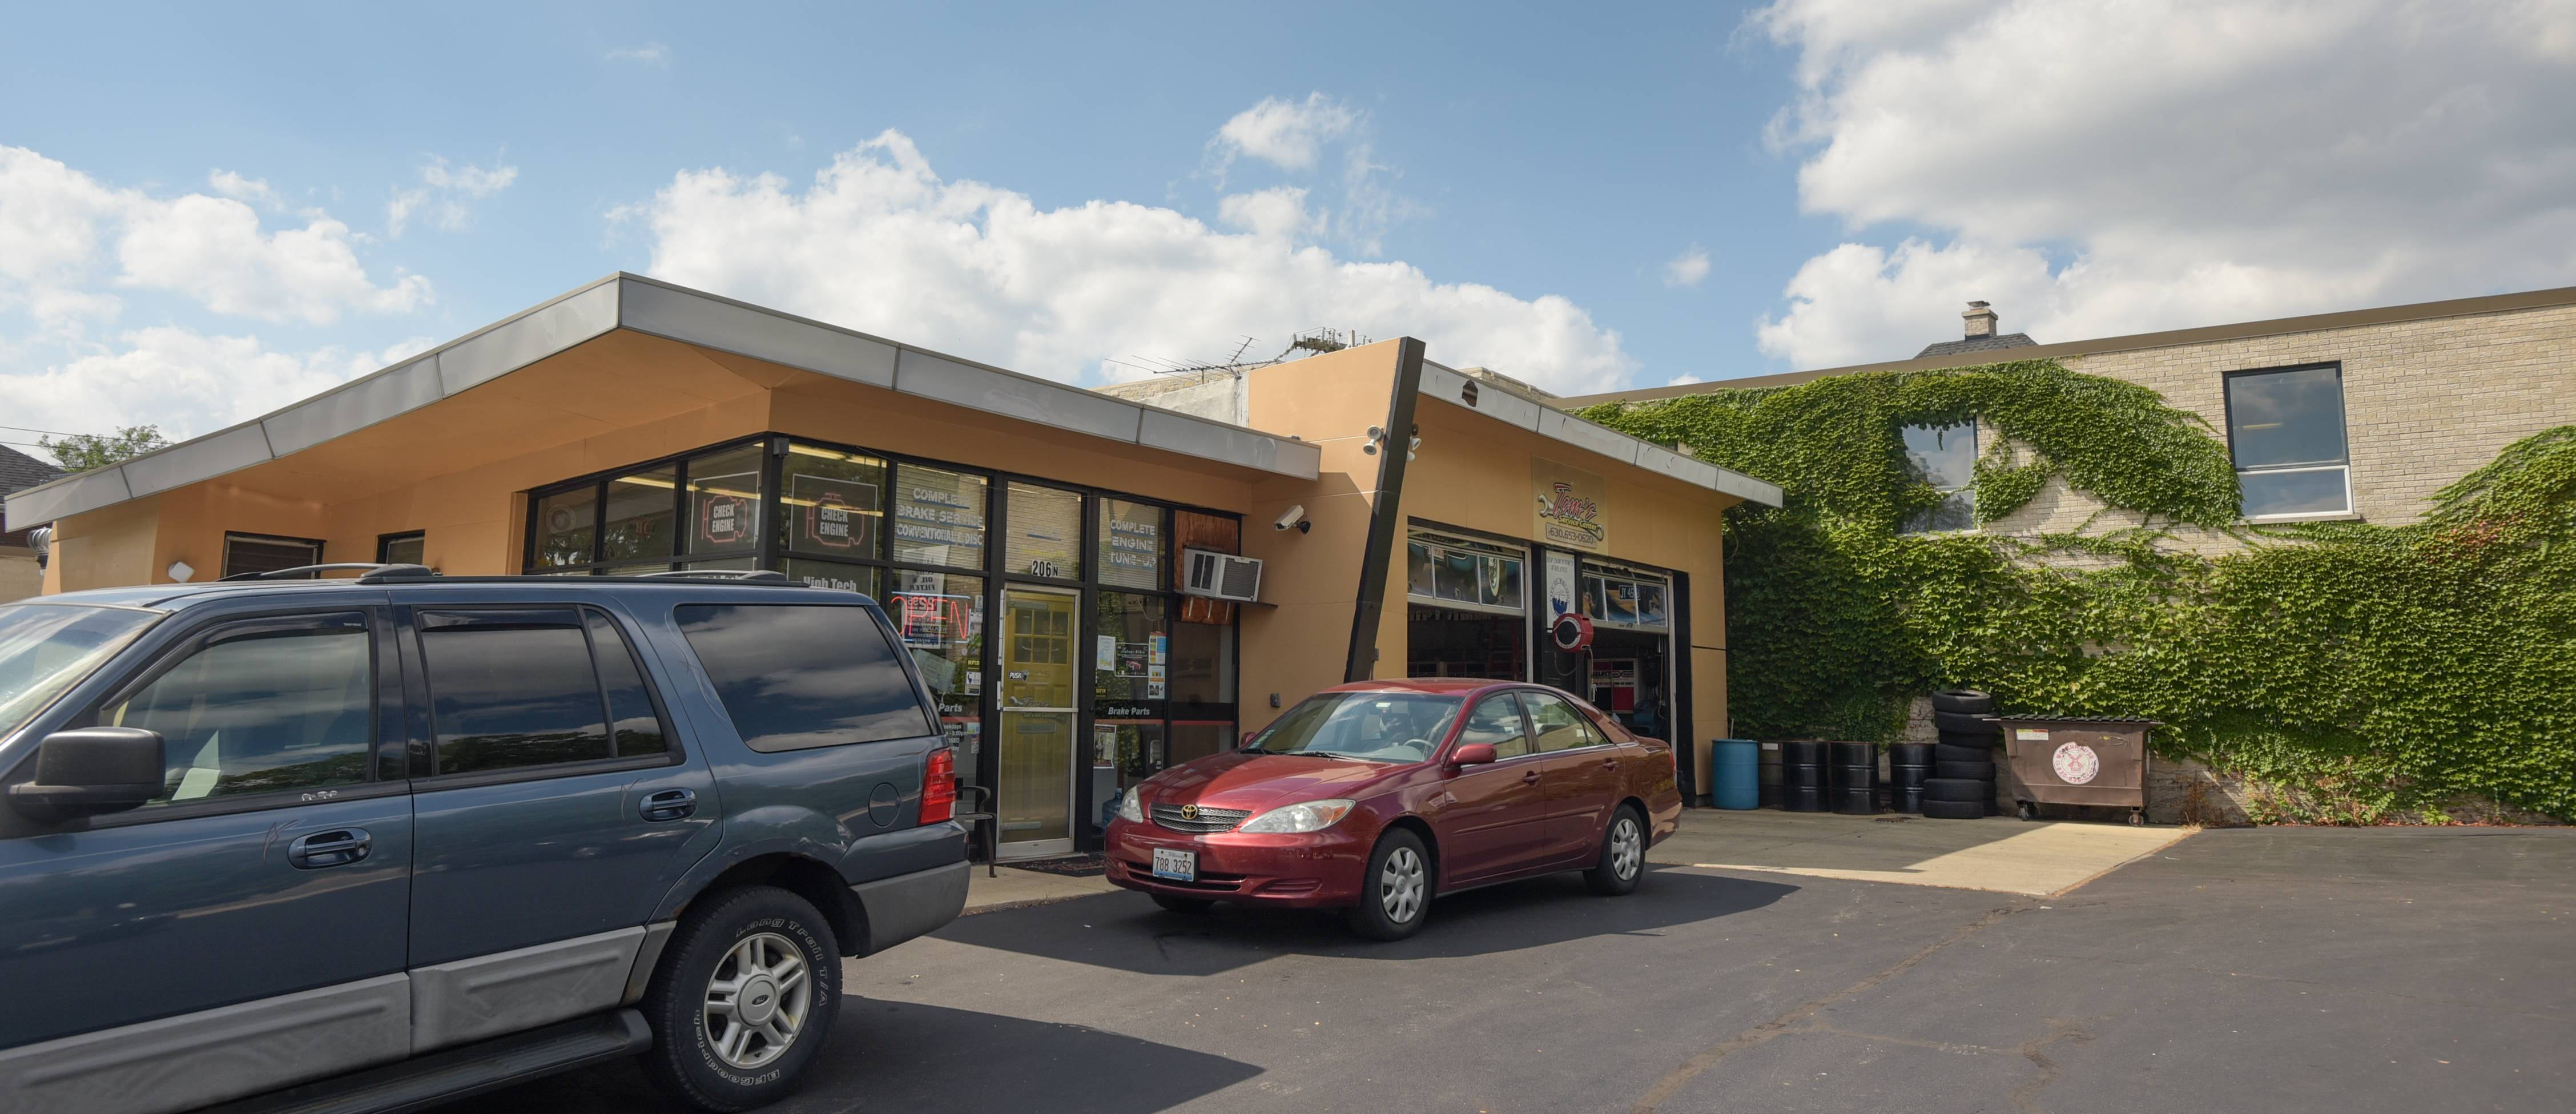 Tom's Service Station is closing next week after nearly 50 years in downtown Wheaton. The property has been sold to a developer who plans to replace it with a one-story retail building.